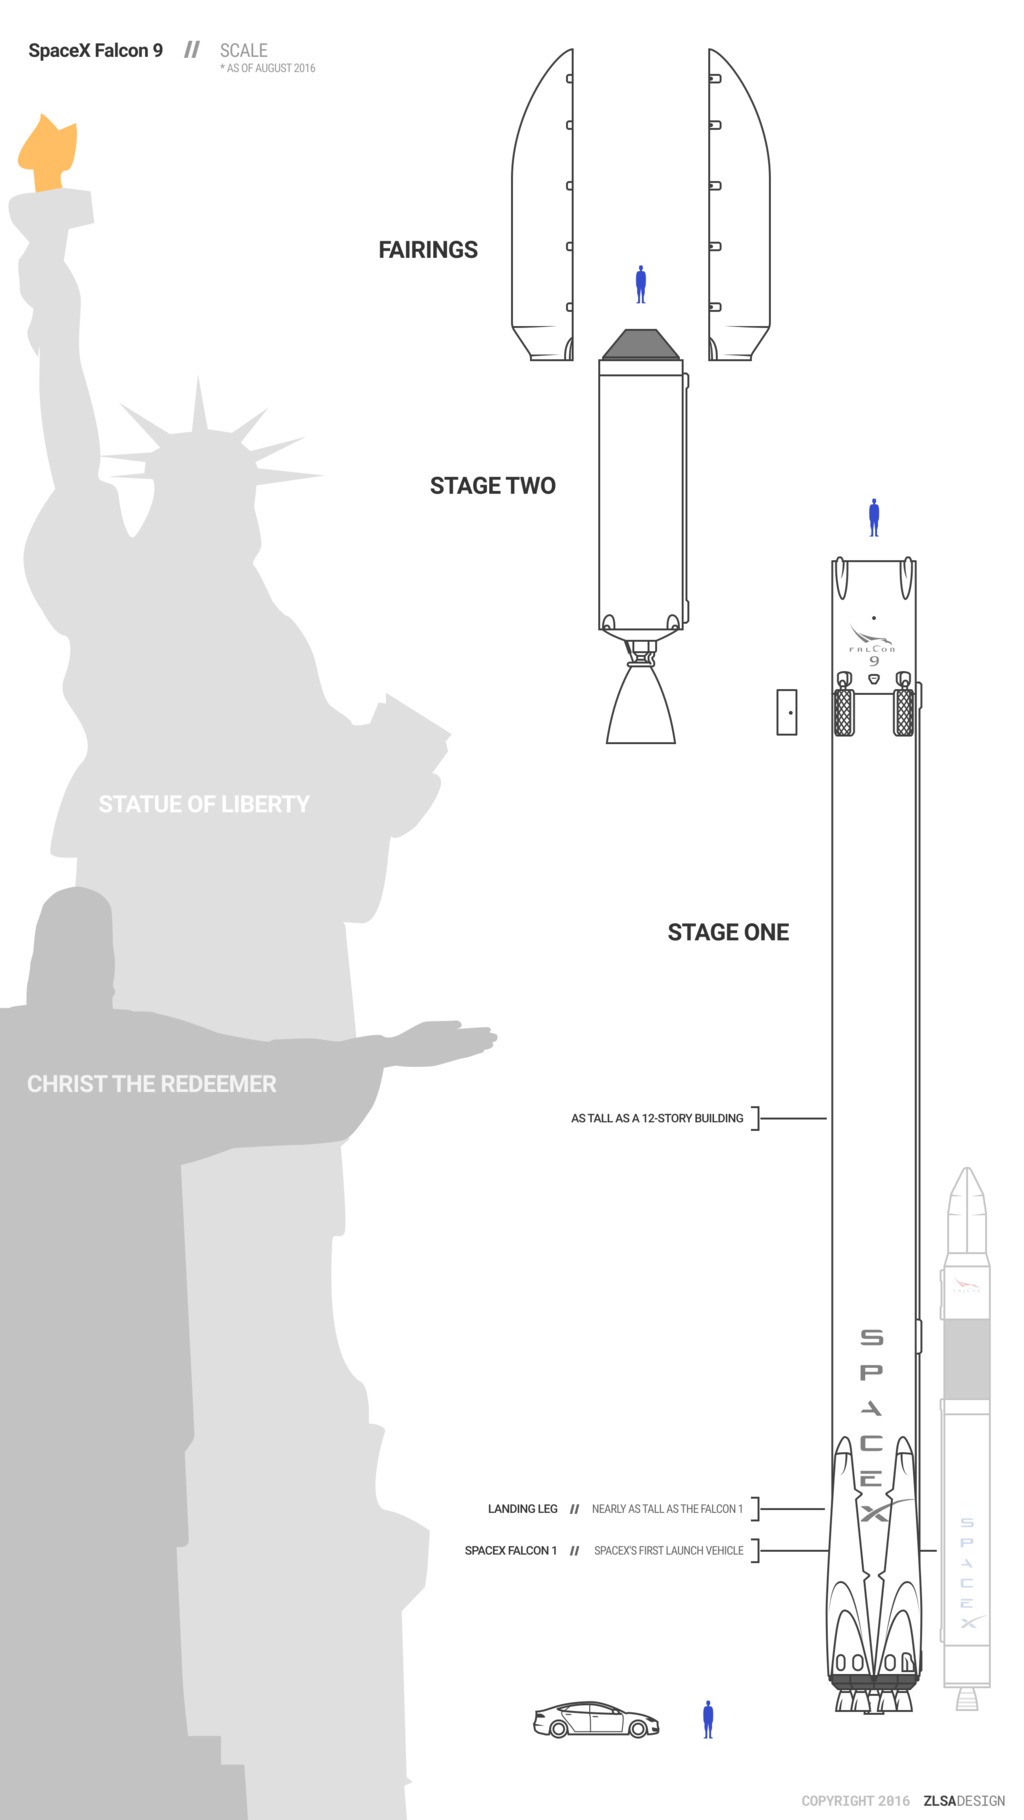 SpaceX Falcon 9 Scale